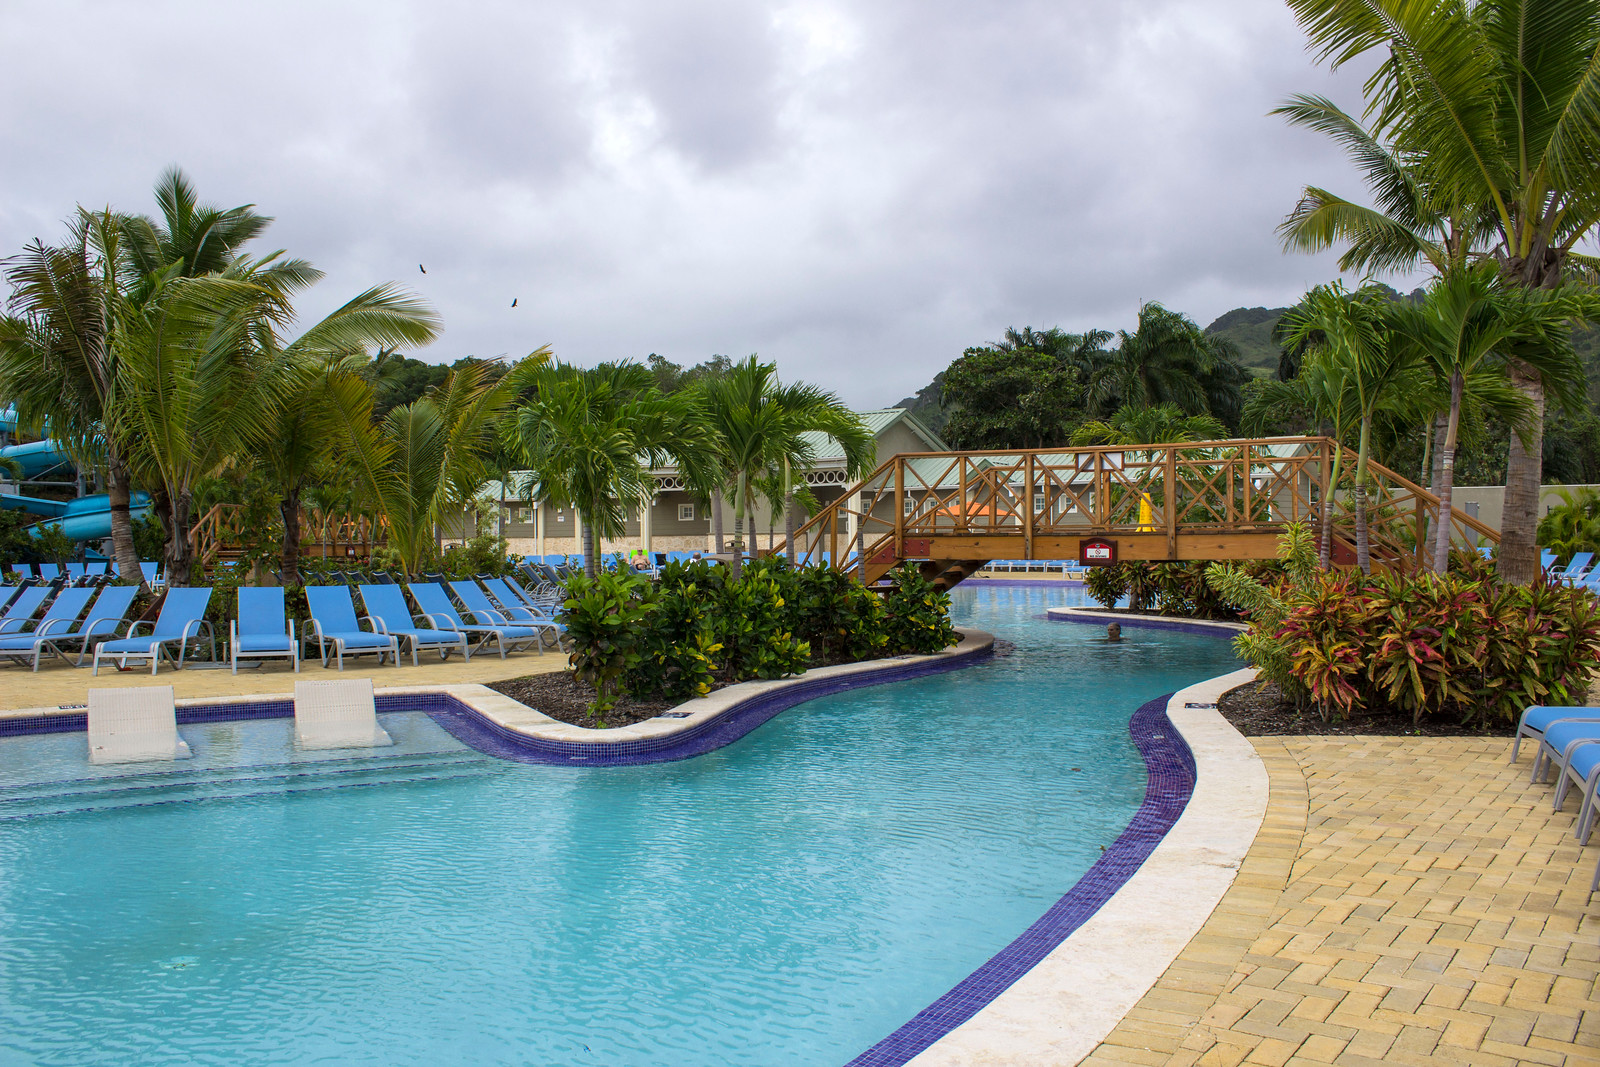 Amber Cove Dominican Republic Cruise Ship Port Guide - Swimming Pool Amber Cove